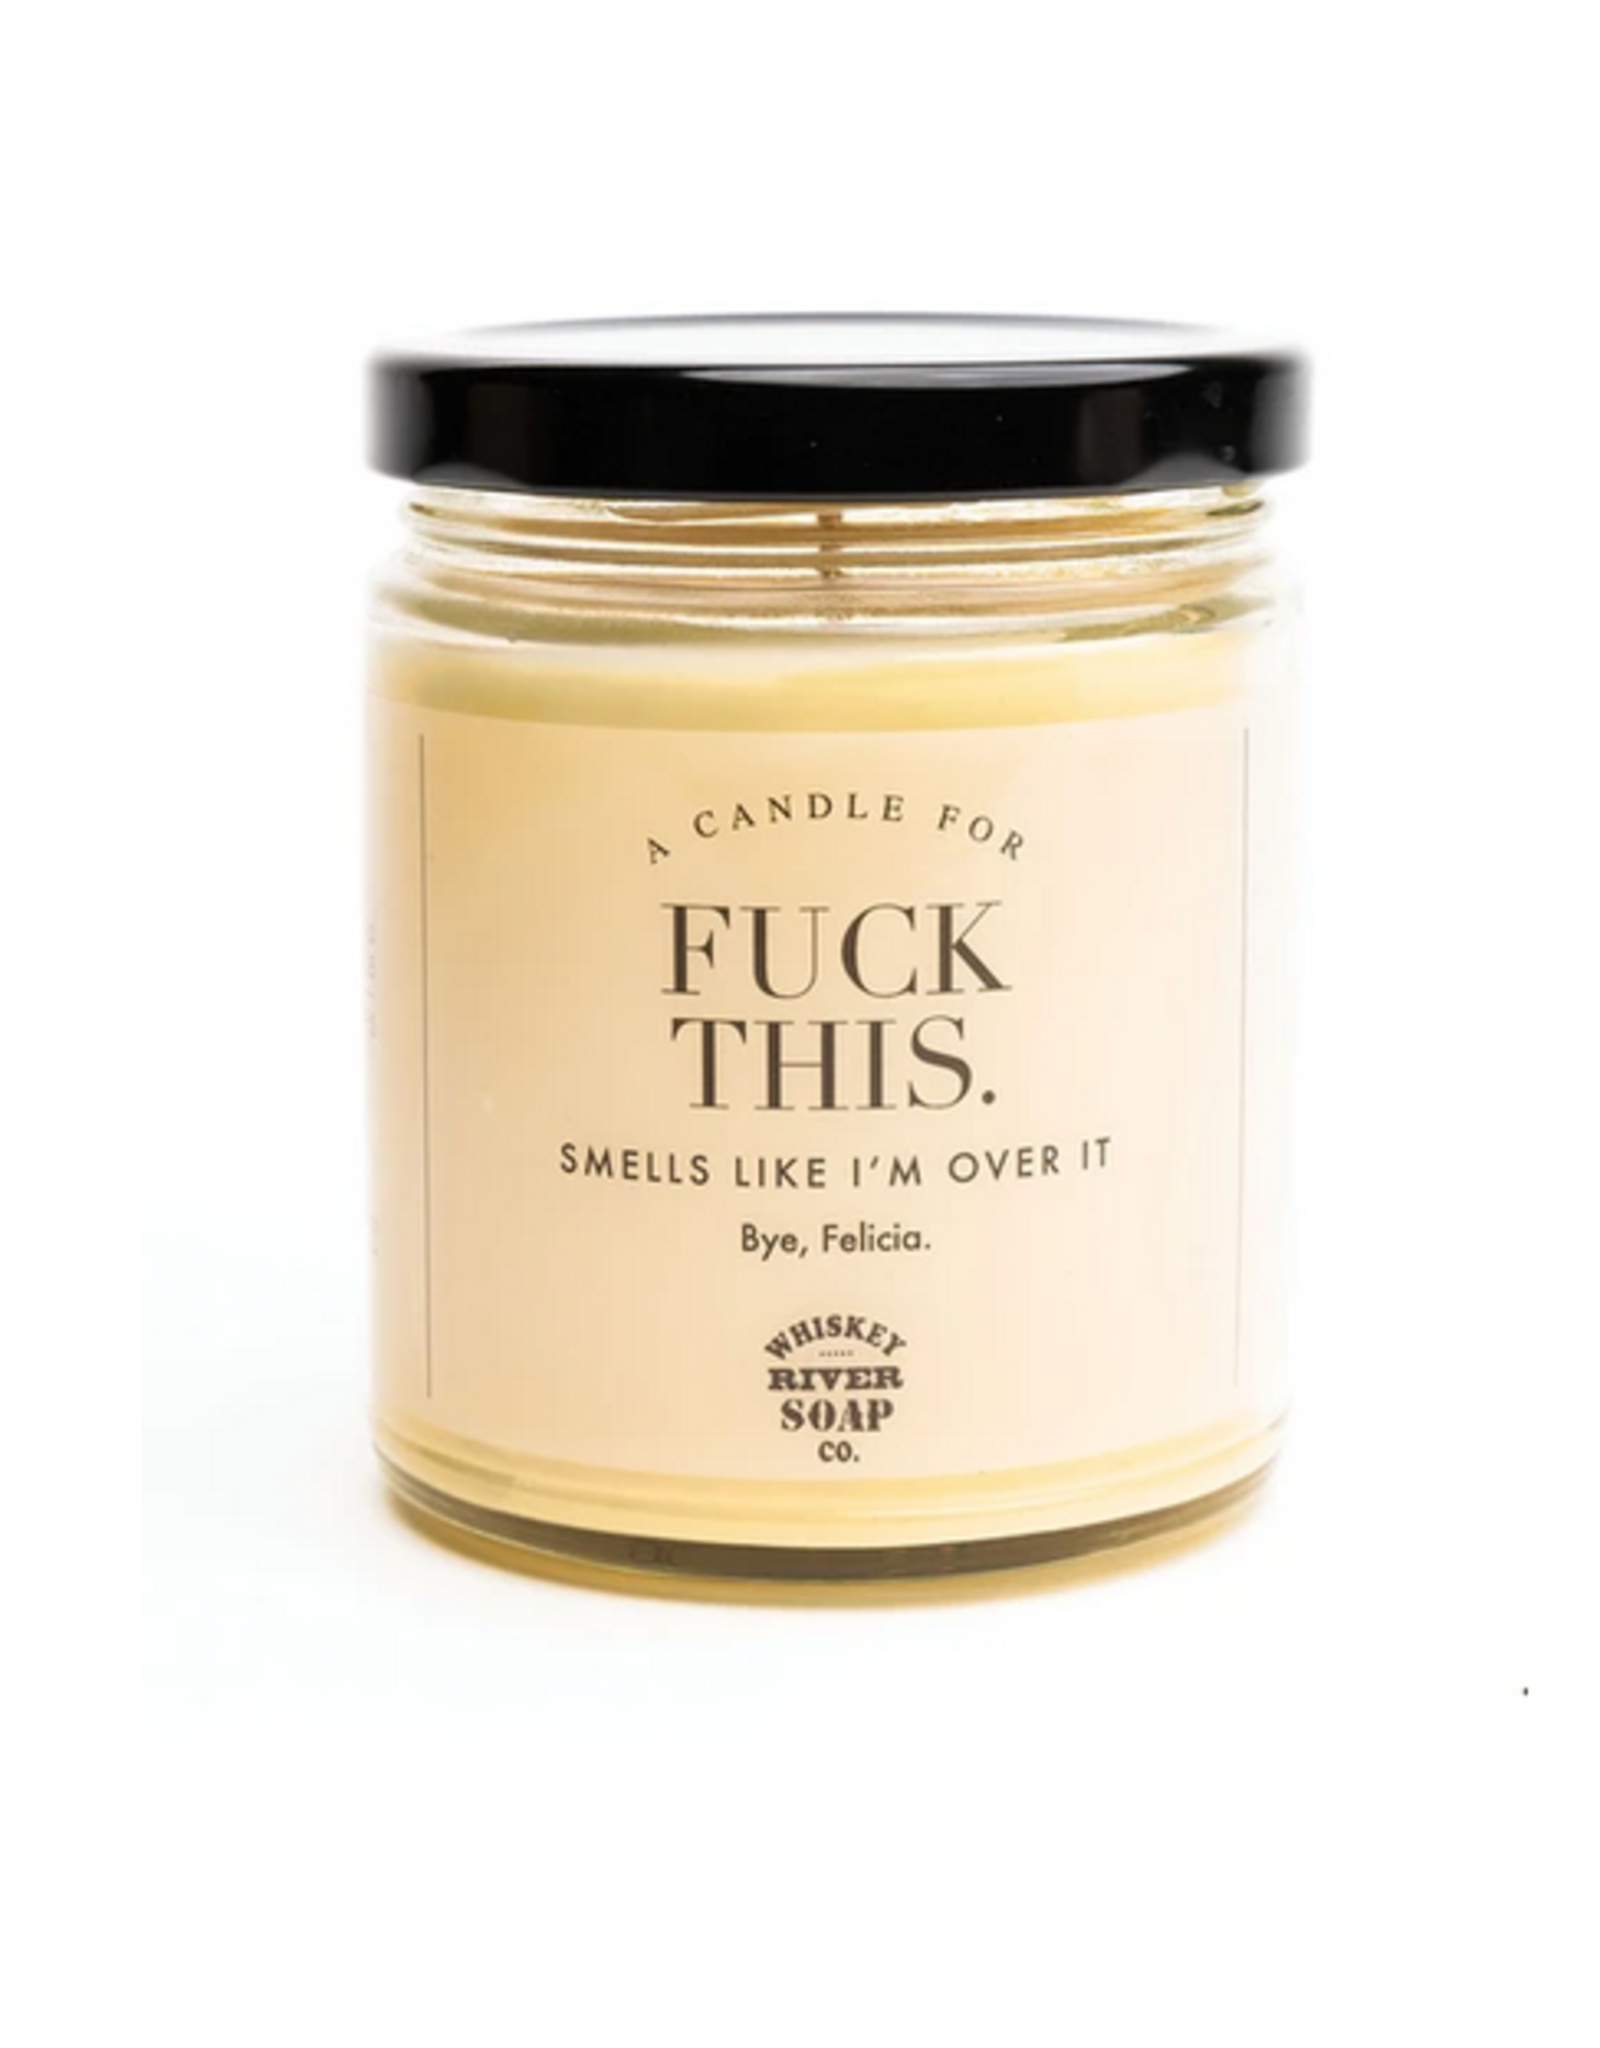 A Candle For Fuck This (Amaretto Sour Scented)